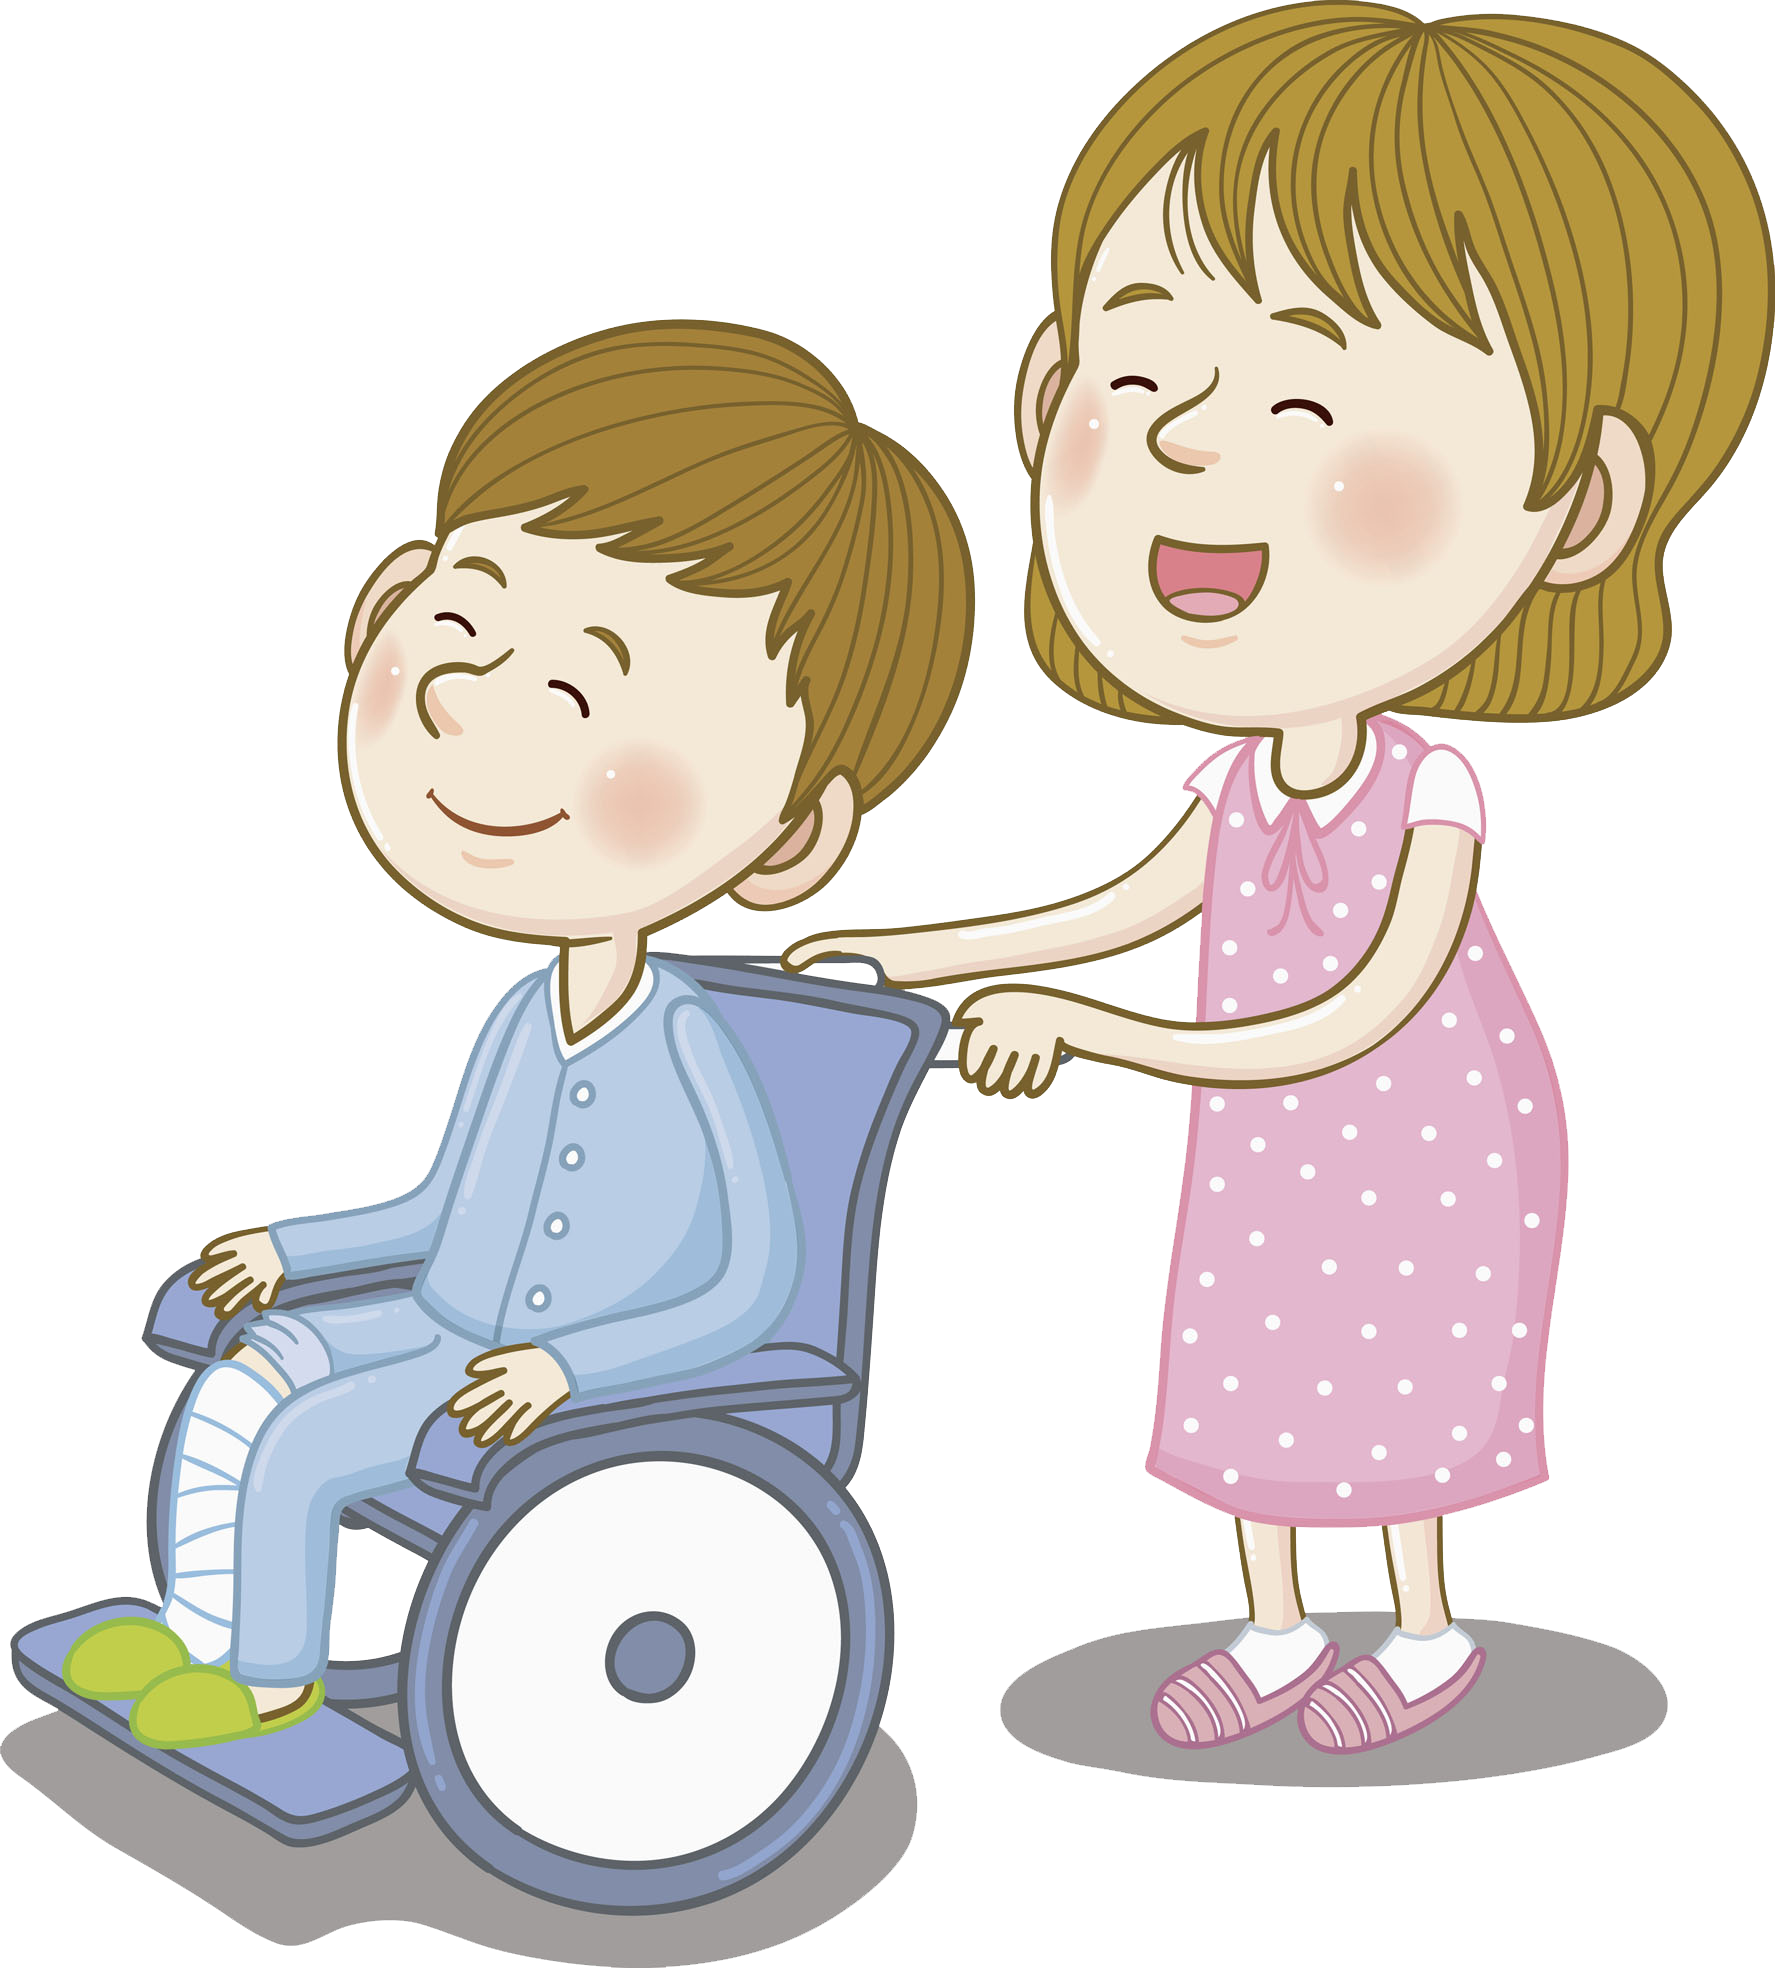 Wheelchair paralysis lesion a. Injury clipart leg injury